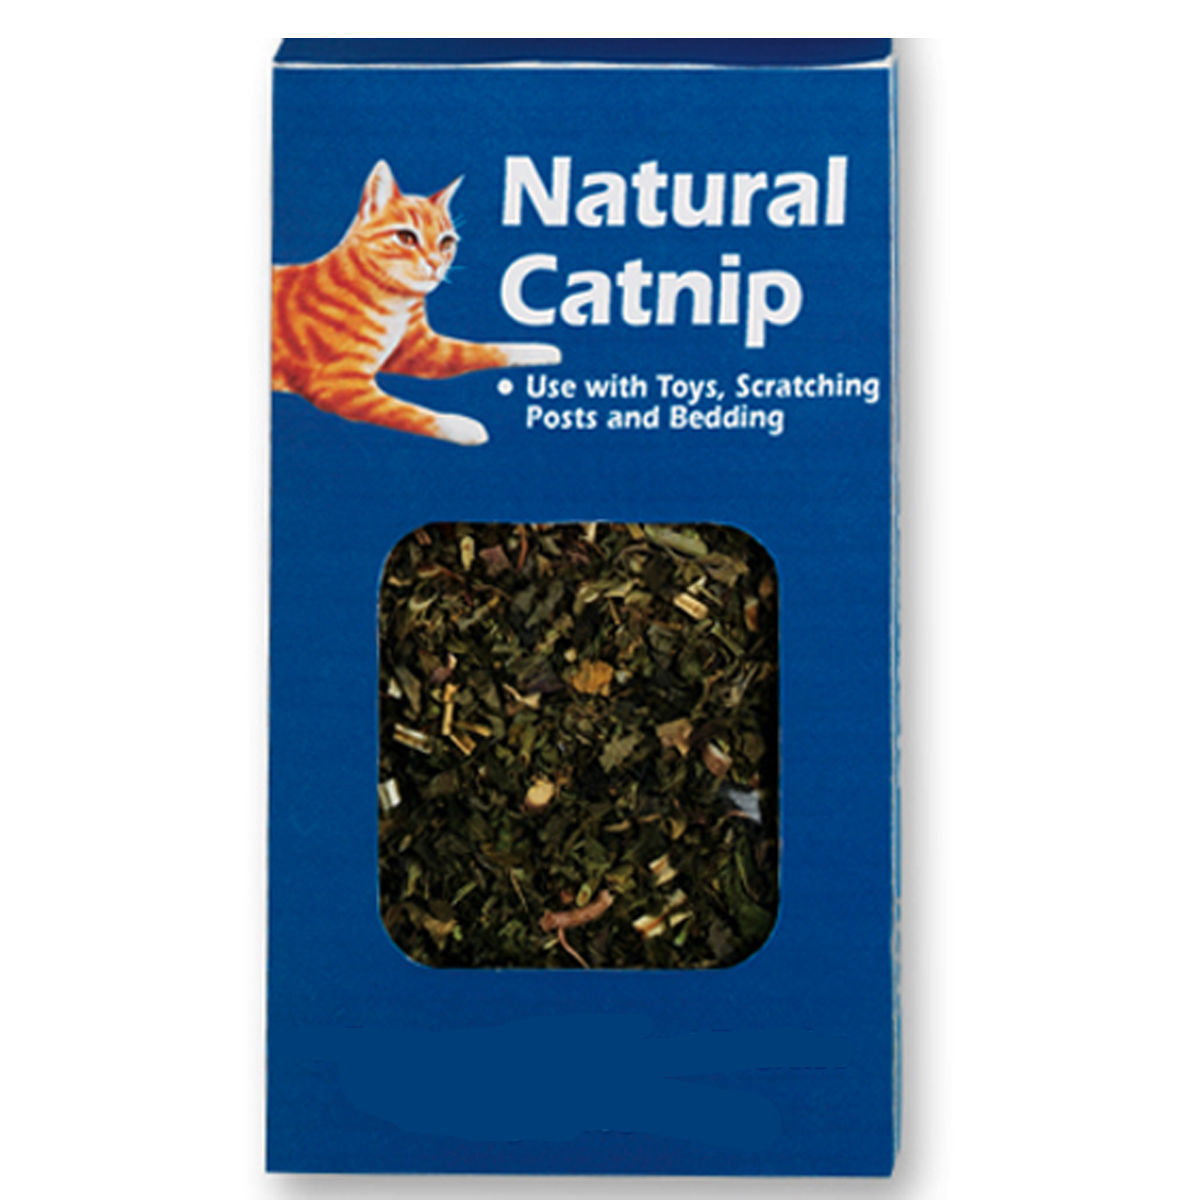 6 oz  of our Natural Catnip